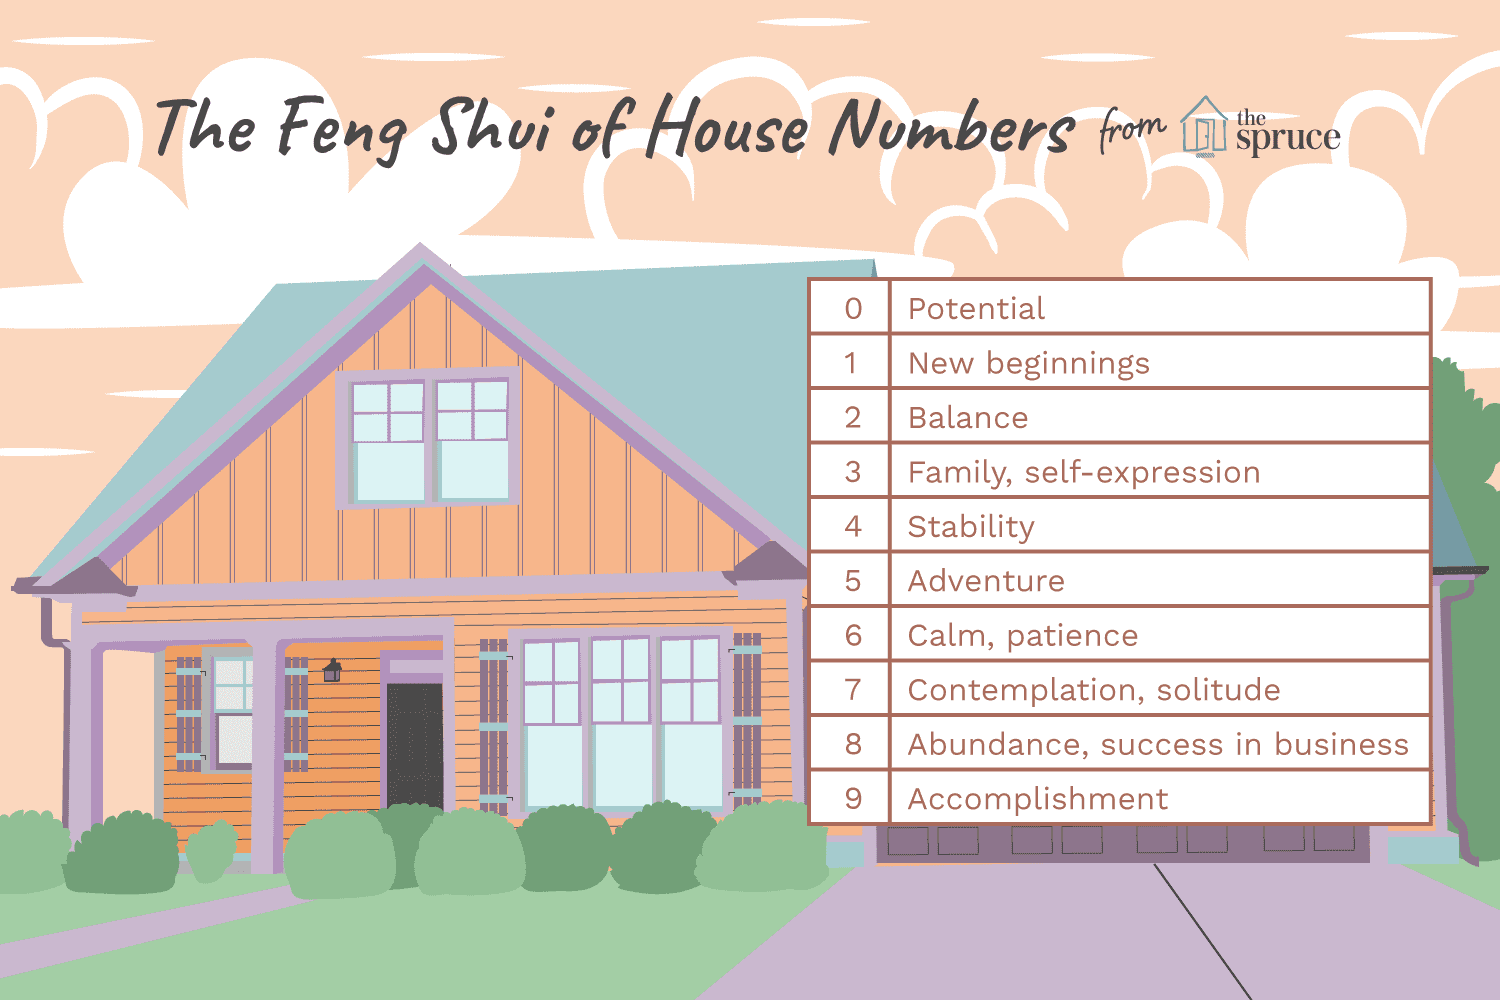 Surprising What Numbers Have Good Feng Shui For A Home Interior Design Ideas Gentotryabchikinfo